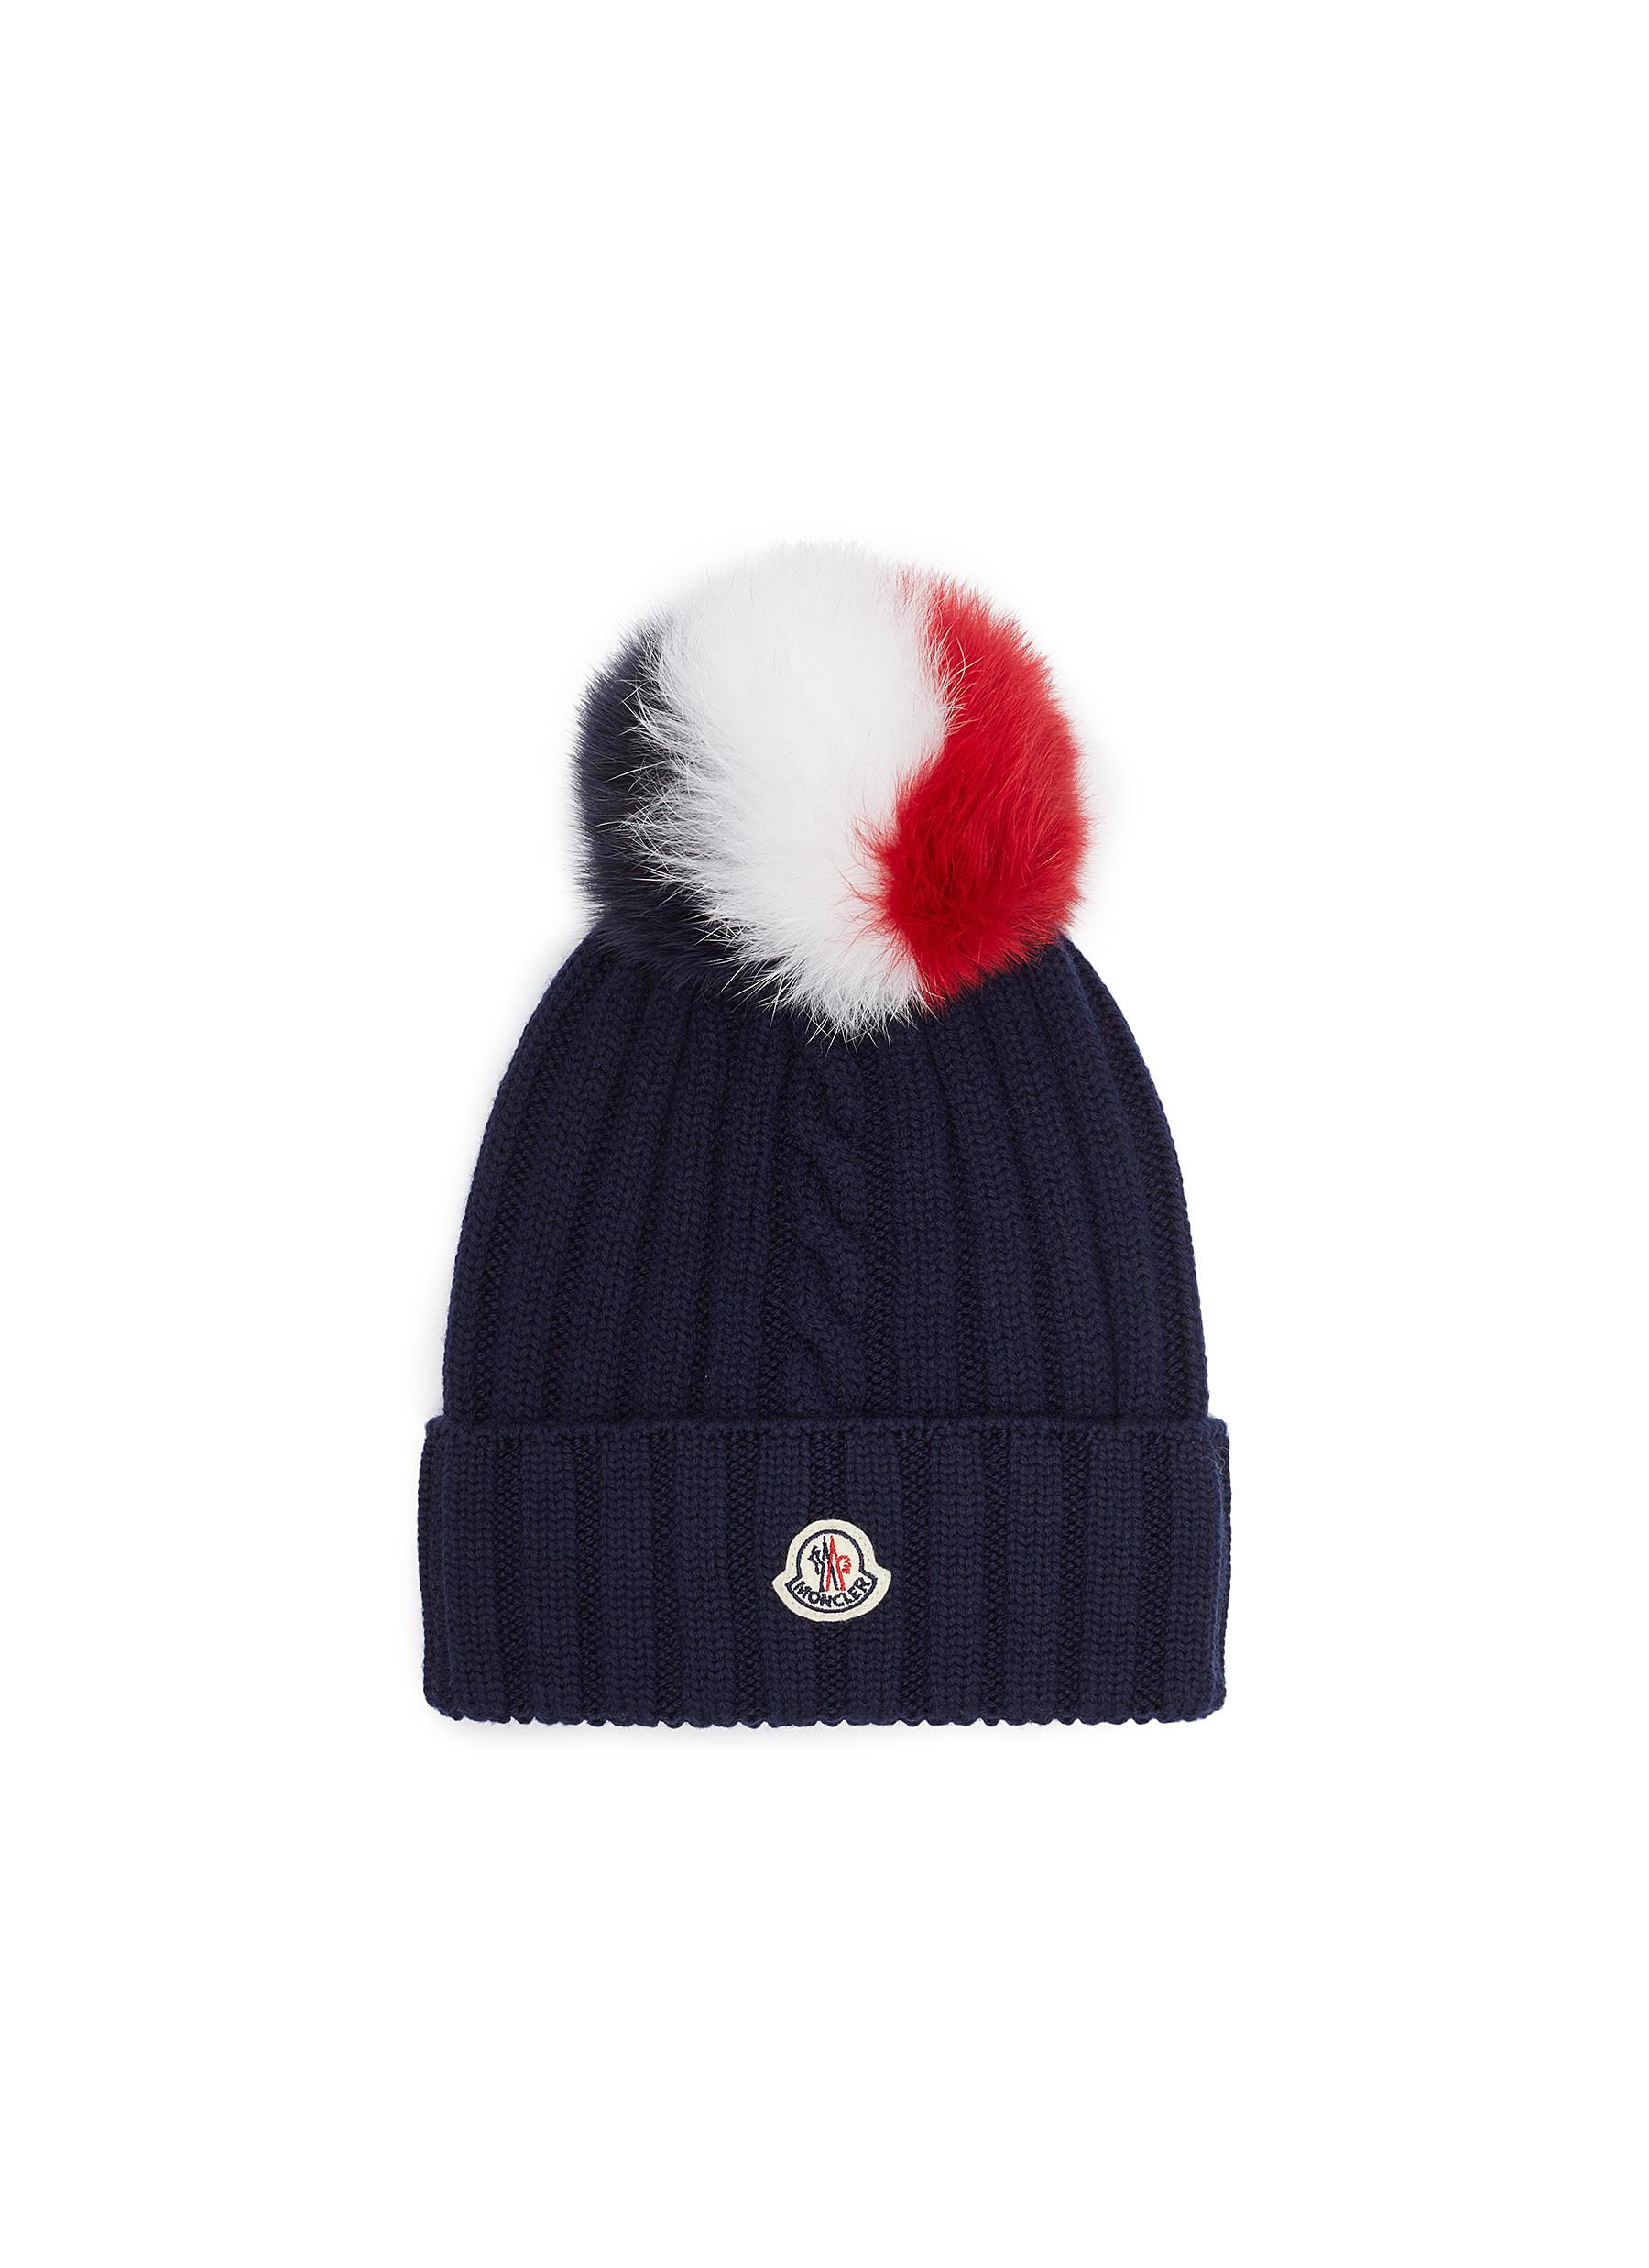 1a4aa265902 Women s Moncler Hats - Lyst - Your World of Fashion